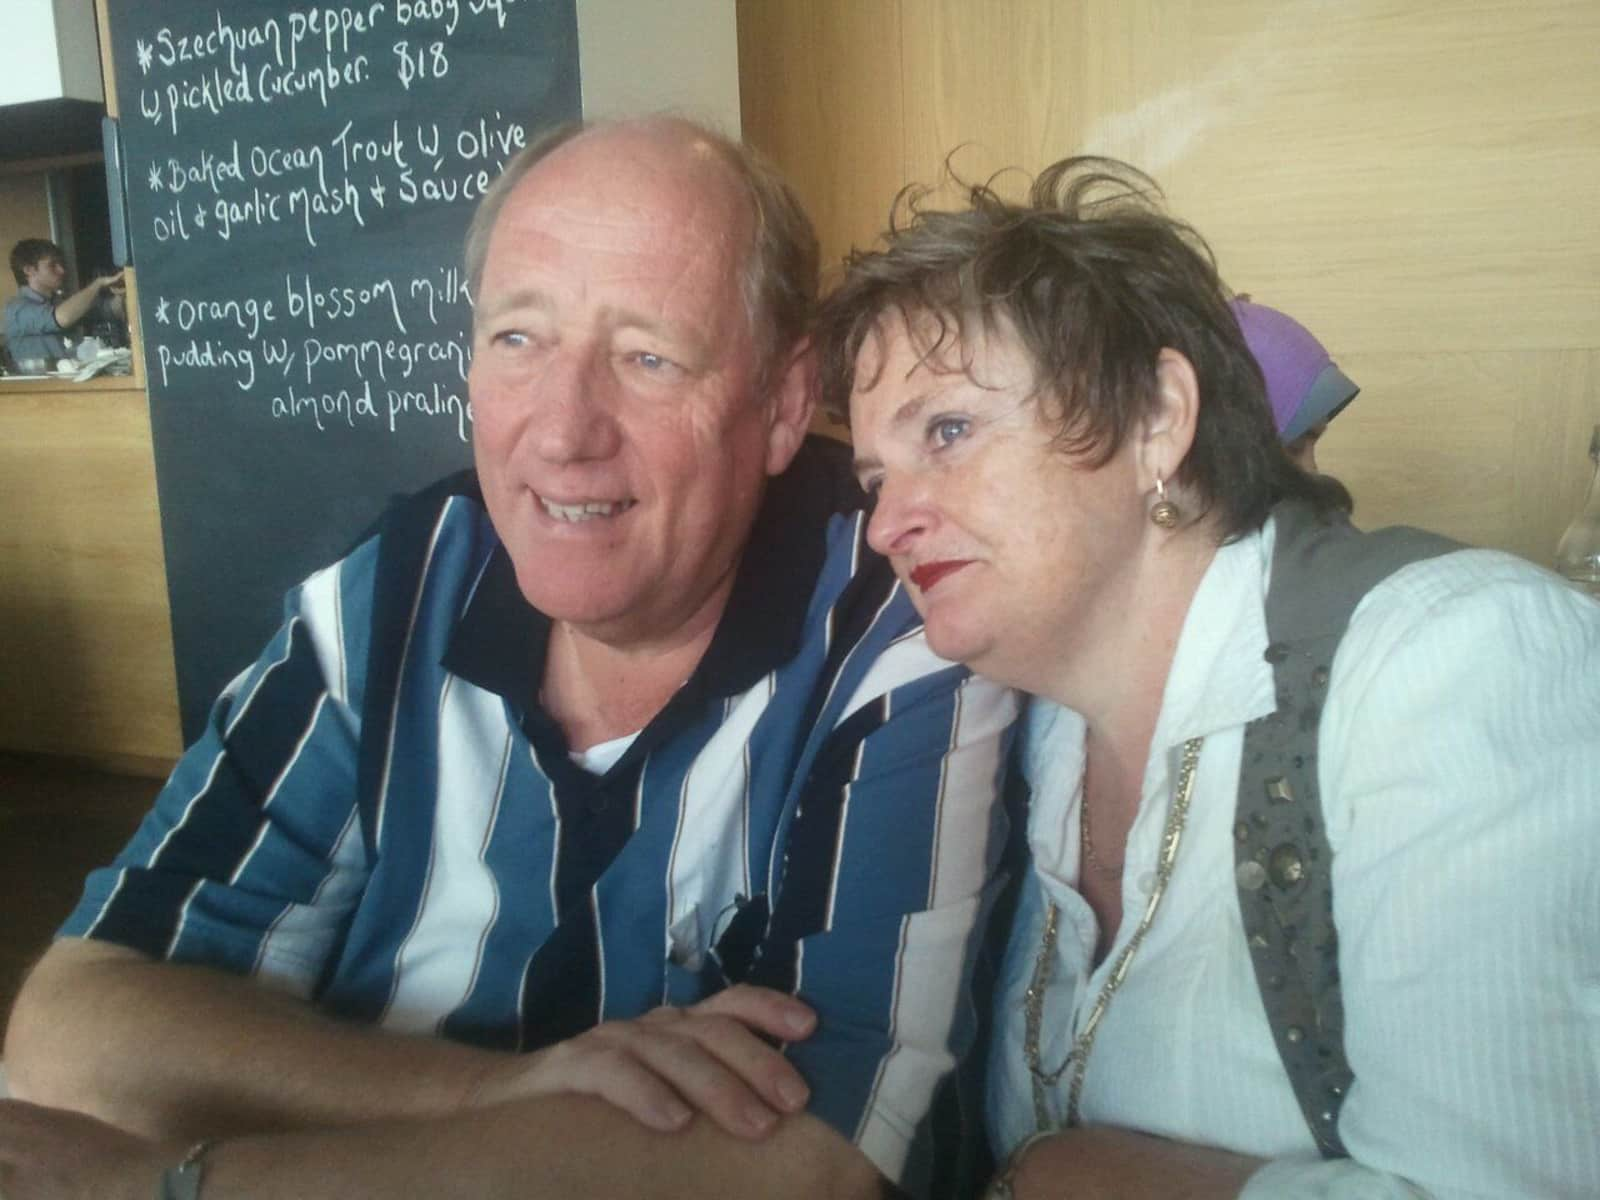 Debi & Jim from Newcastle, New South Wales, Australia